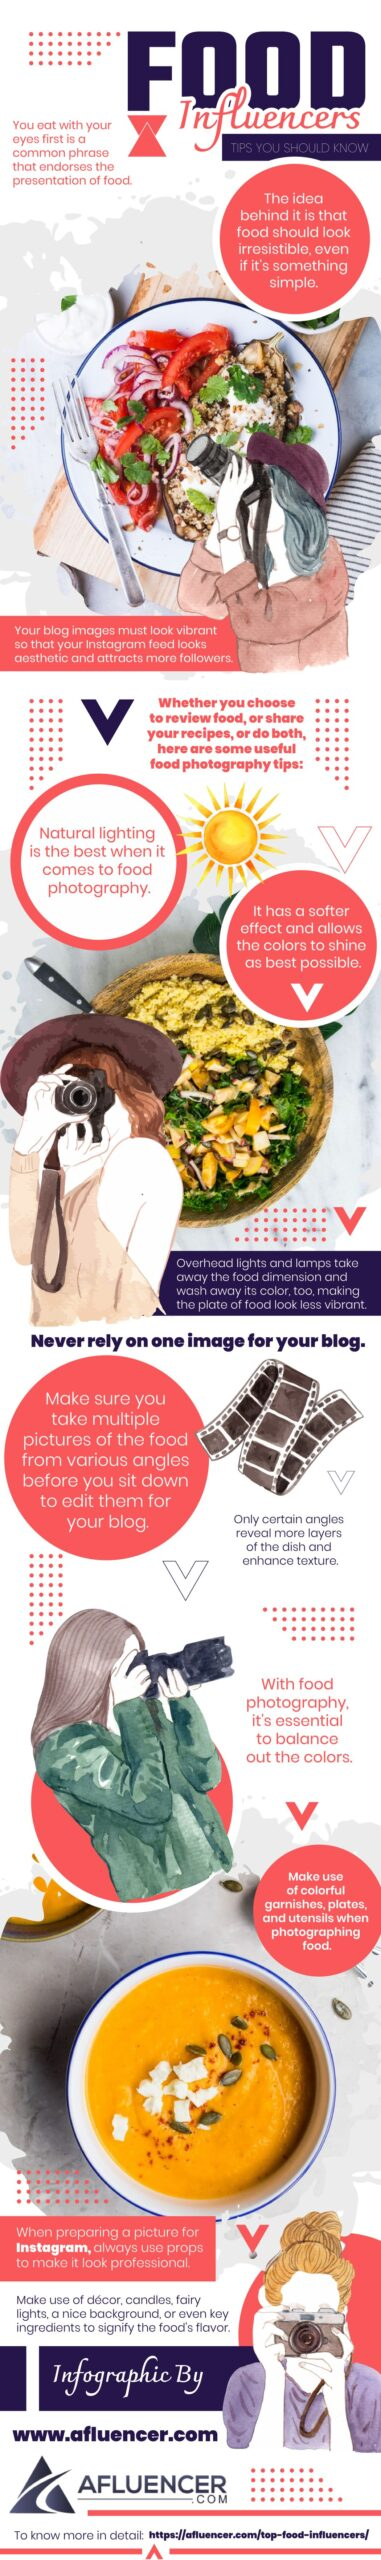 Food Influencer Tips Infographic